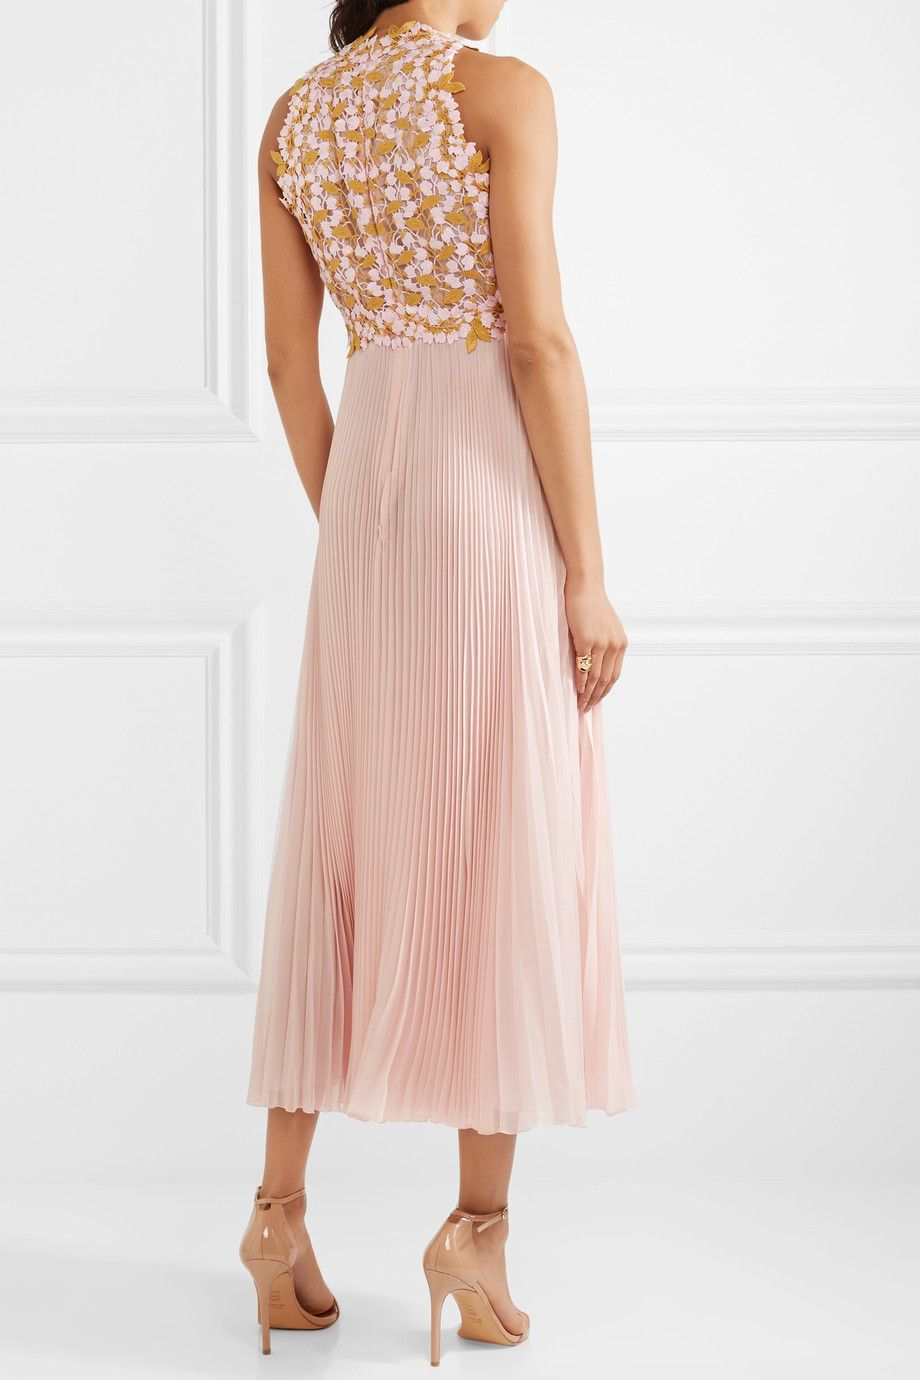 Lace Midi Dress Giambattista Valli Largest Supplier Cheap Online Outlet Deals Clearance 2018 For Cheap Price 62QLAge